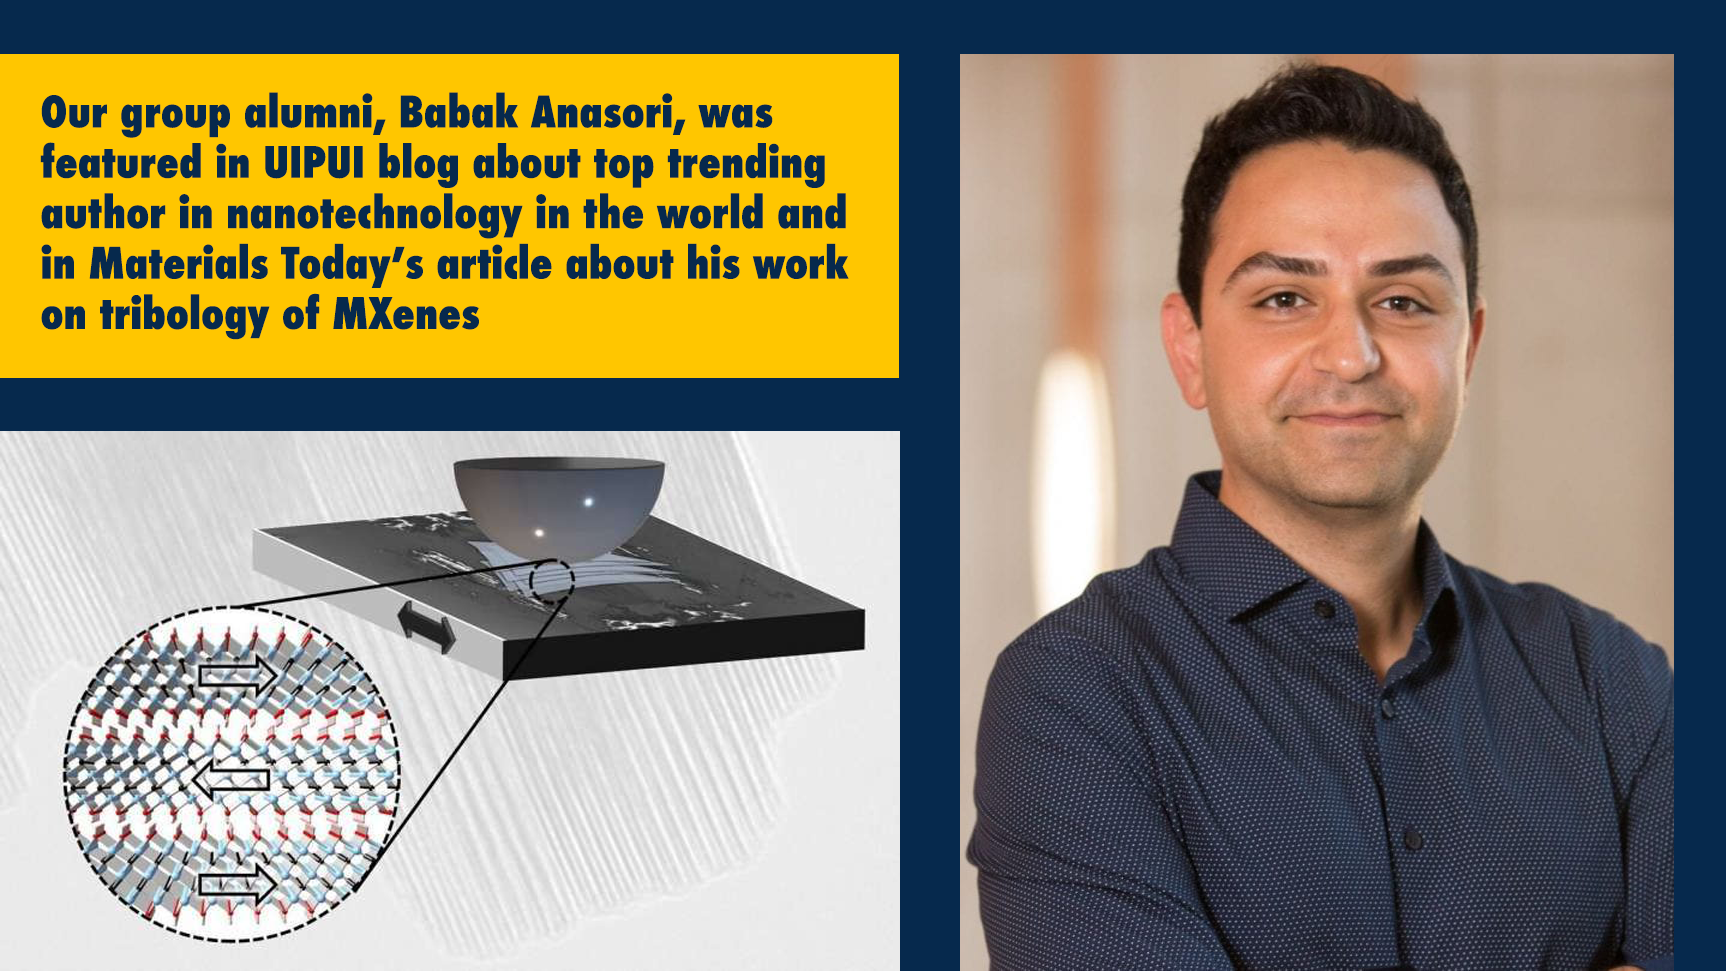 Our Group Alumni, Babak Anasori, Featured in UIPUI Blog About Top Trending Author in Nanotechnology in the World and in Materials Today's Article about His Work on Tribology of MXenes